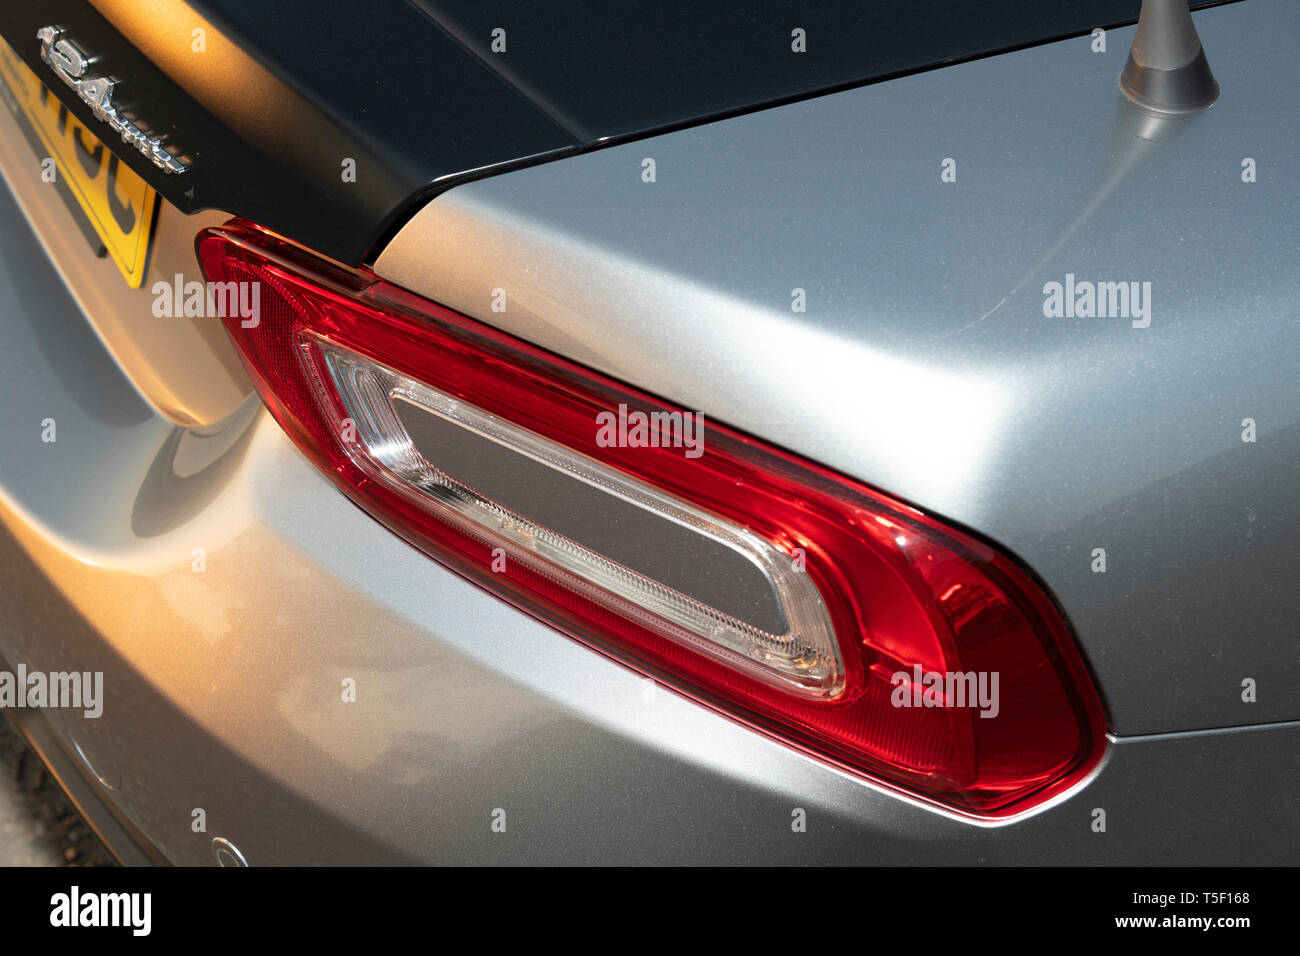 hight resolution of 2018 fiat 124 abarth spider rear light stock image